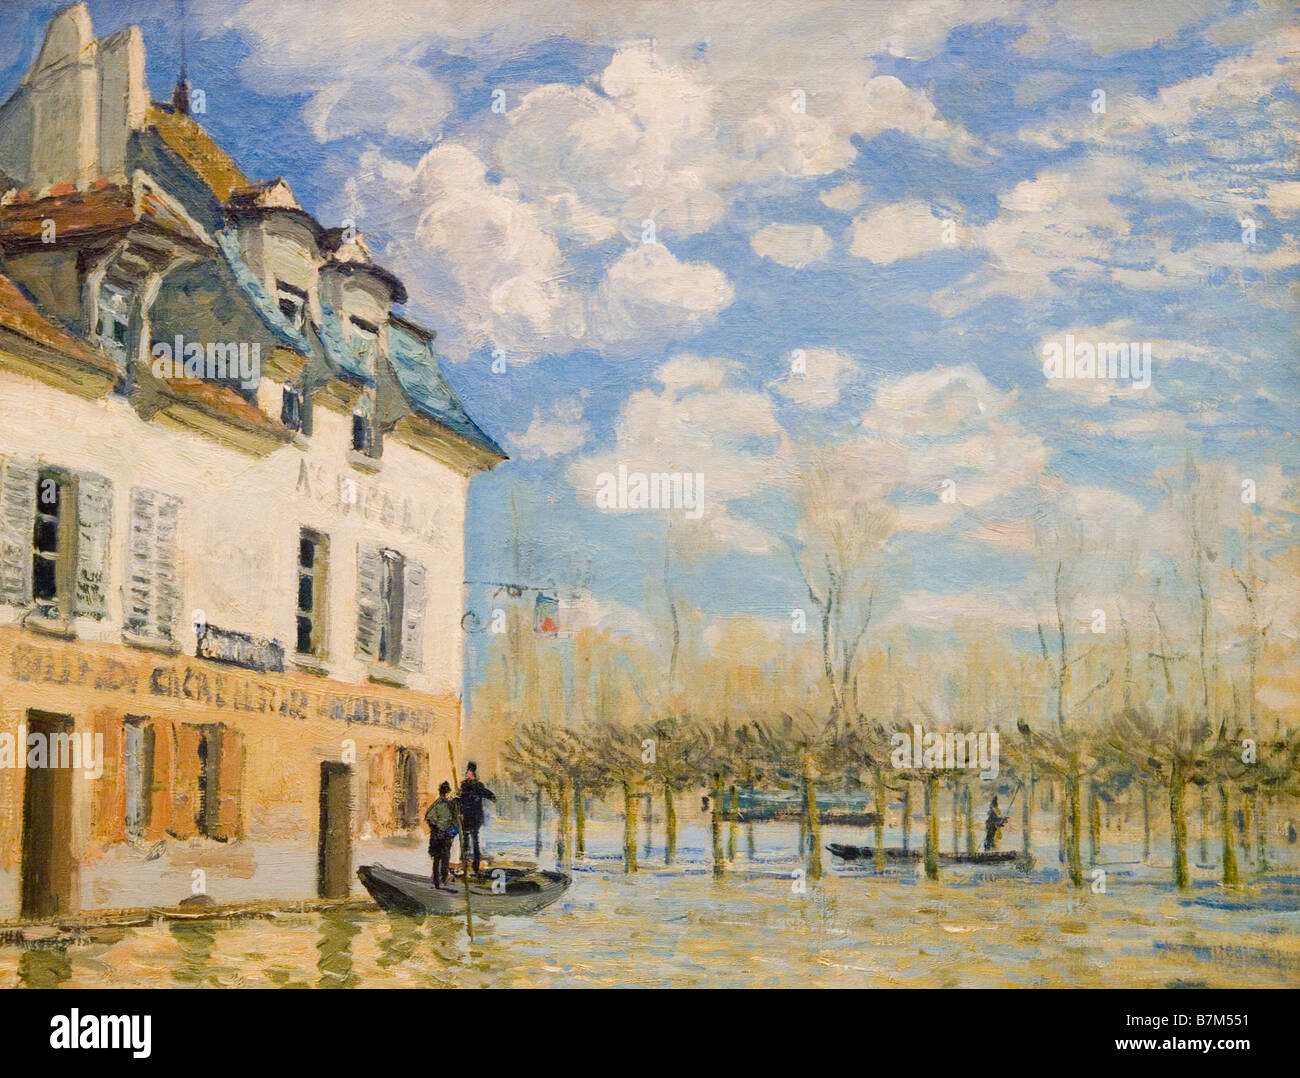 L'inondation à Port-Marly by Alfred Sisley, Musee D'Orsay Paris France Europe - Stock Image